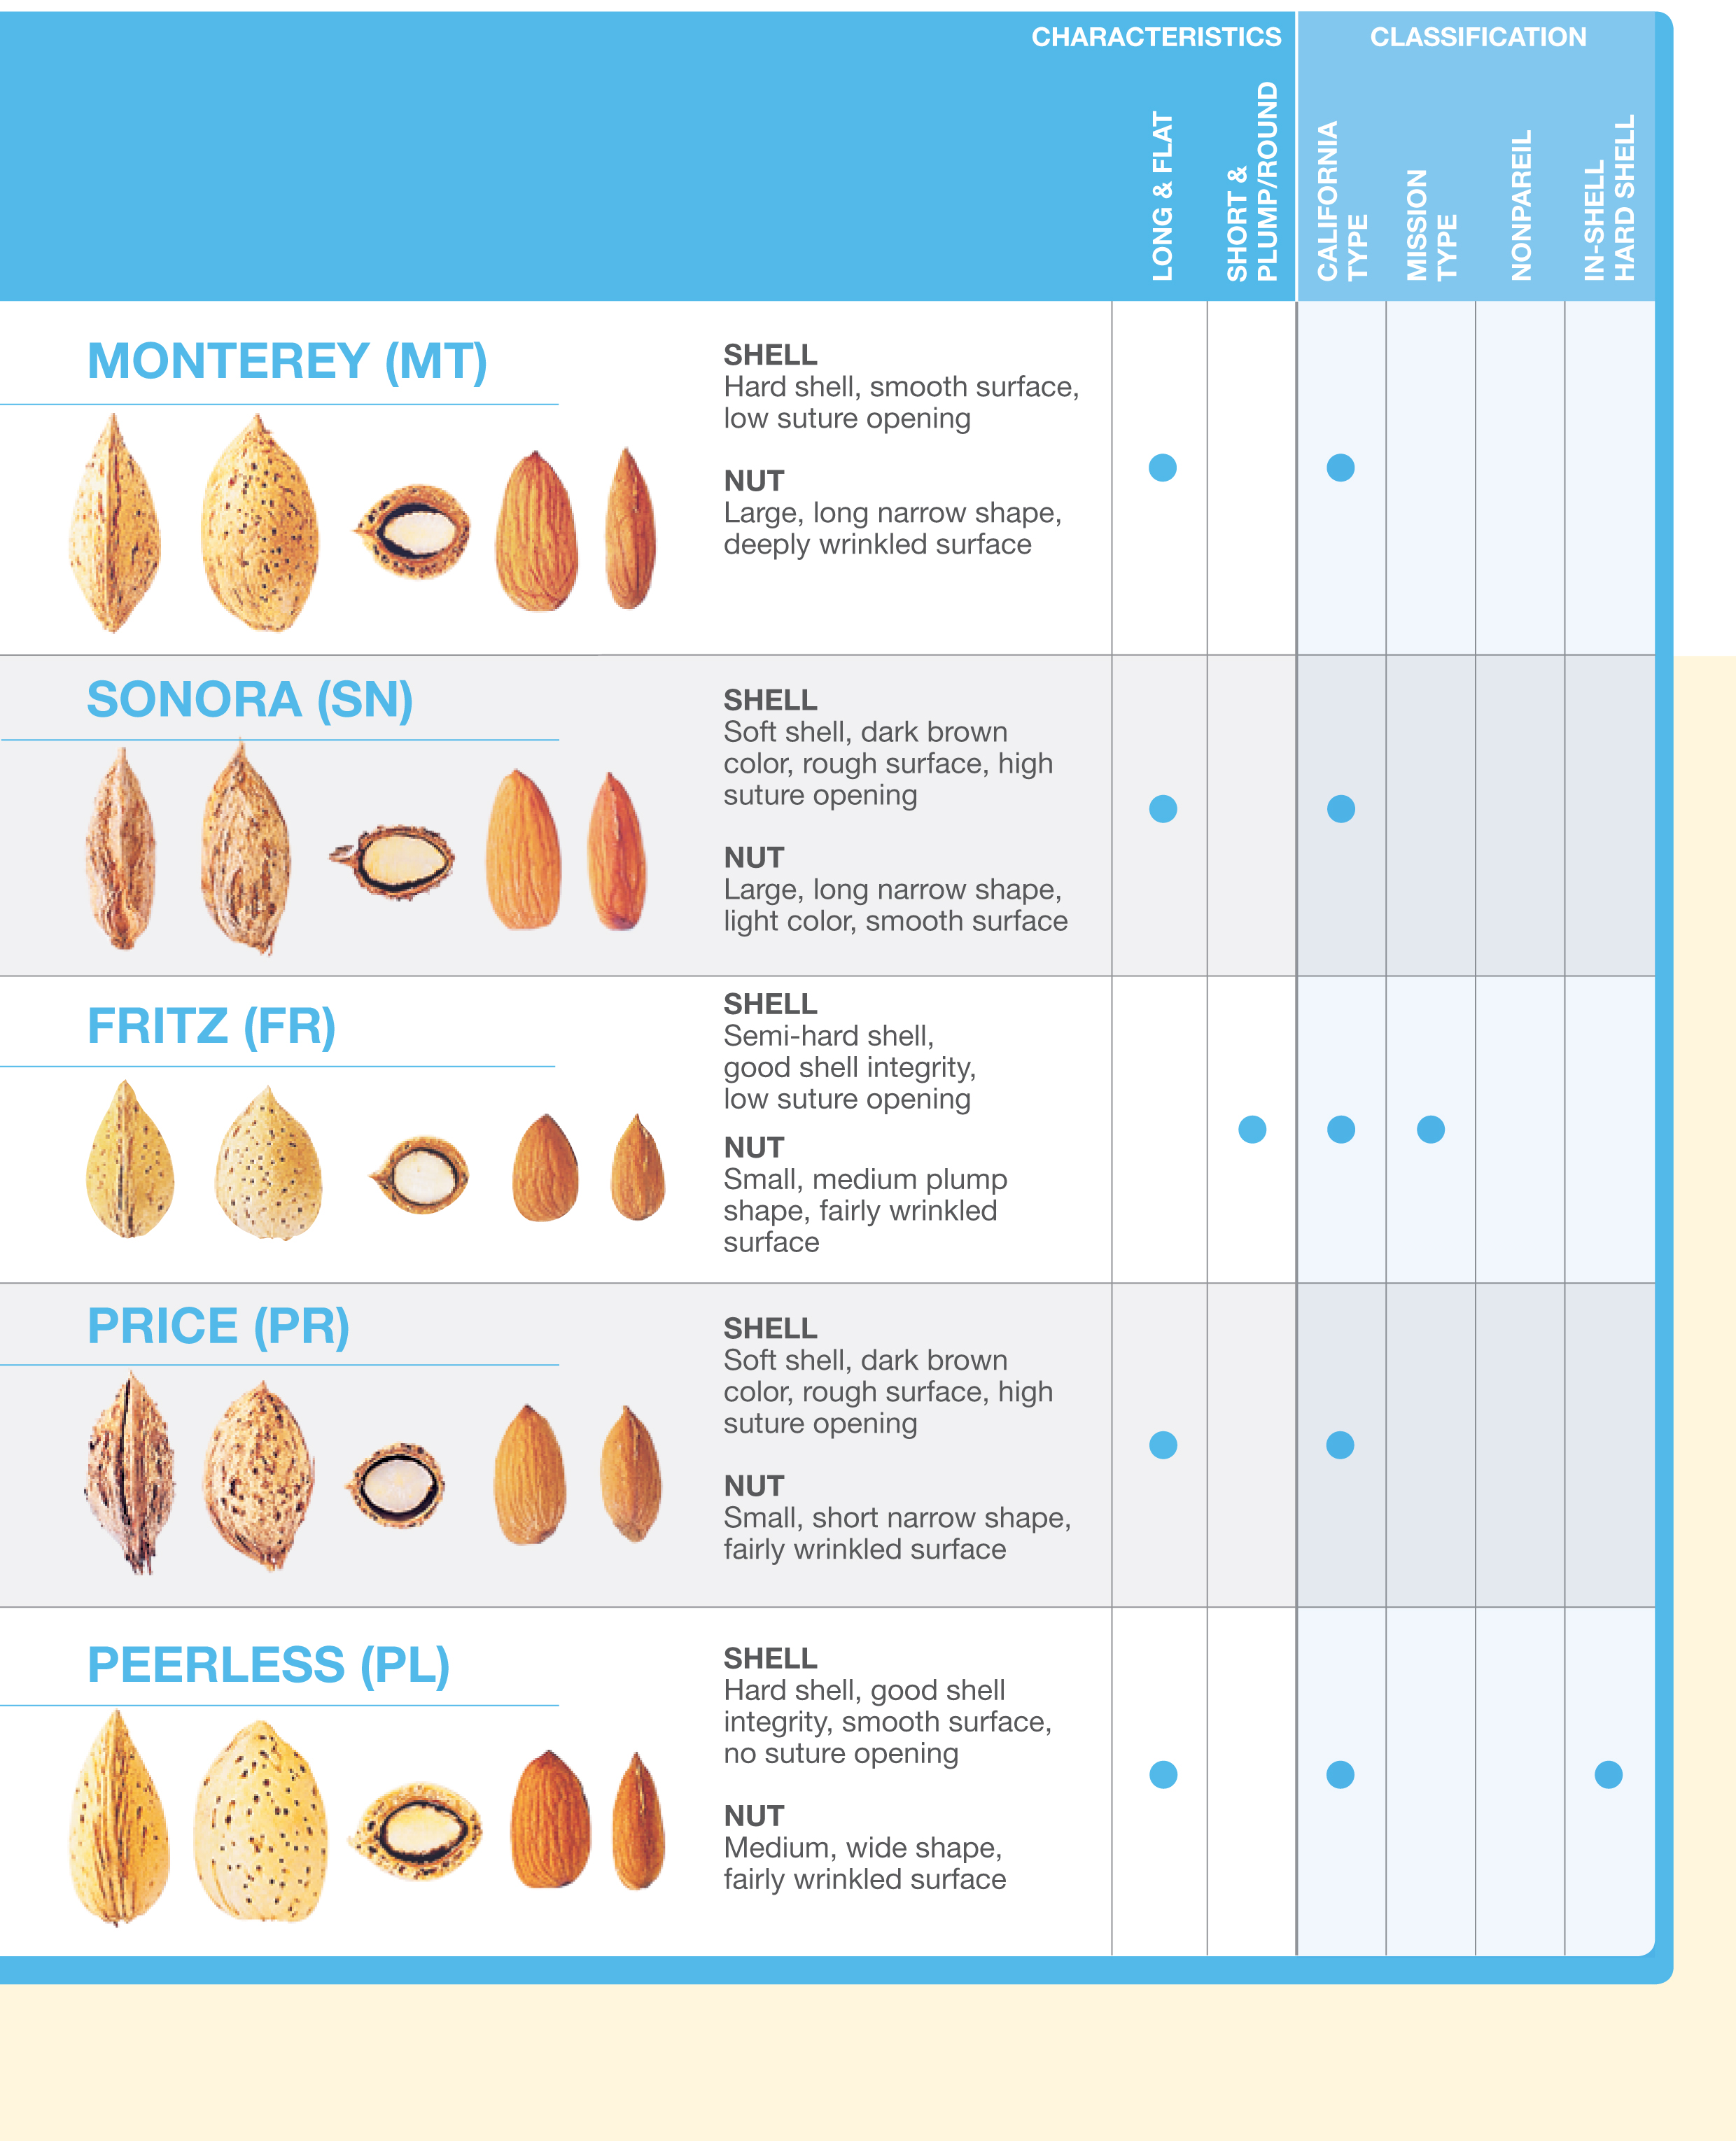 Http Ctgpublishing Com Types Varieties Of California Almonds Types Of California Almonds 2